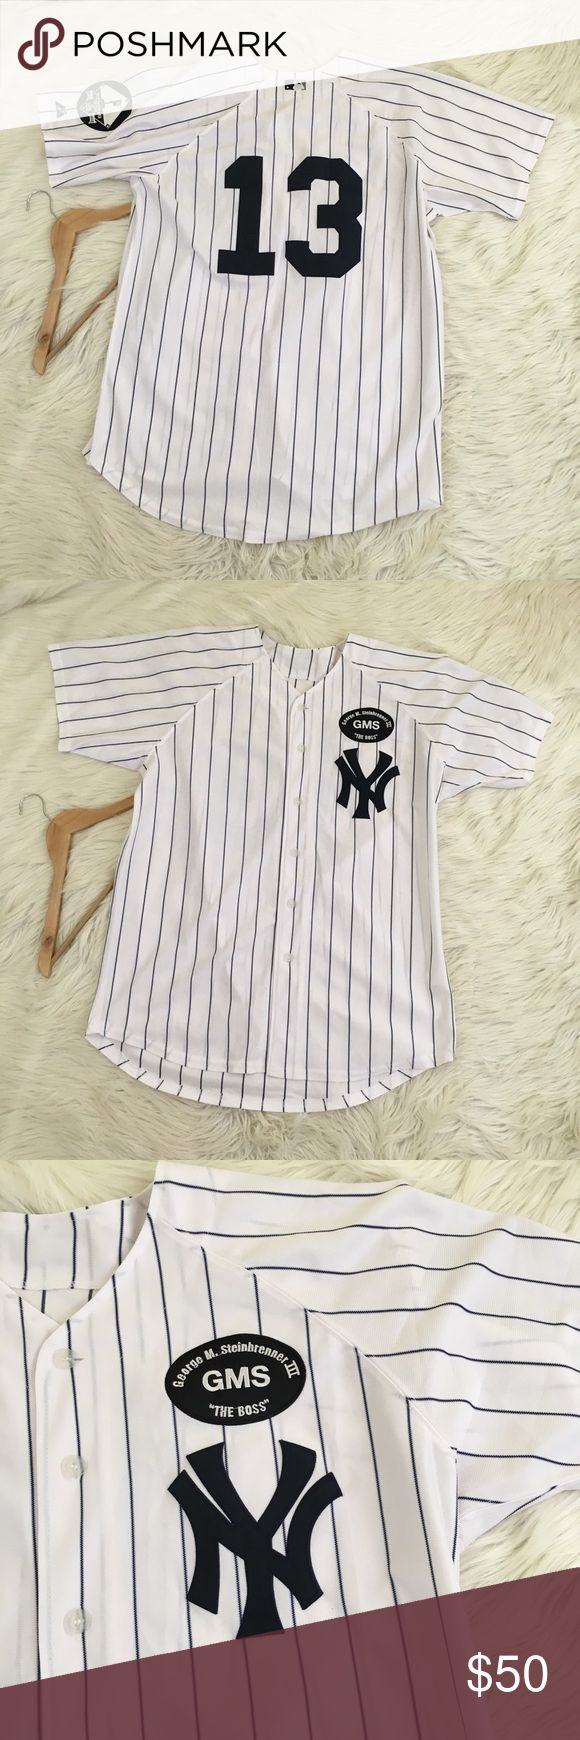 "Alex Rodriguez New York Yankees Majestic Jersey Alex Rodriguez New York Yankees Majestic Cool Base Jersey 2010 • #13 • GMS • BS Patch • Button Down • cool base • Excellent condition, like new • no size, really big. Check measurements.  Length: 33"" Armpit to armpit: 25""  📌NO lowball offers 📌NO modeling 📌NO trades  Come check out the rest of my closet! I have various brands and ALL different sizes ❤️  Tags for discovery: baseball basketball sports Ball shirt XL XXL Mens the boss NFL Fan…"